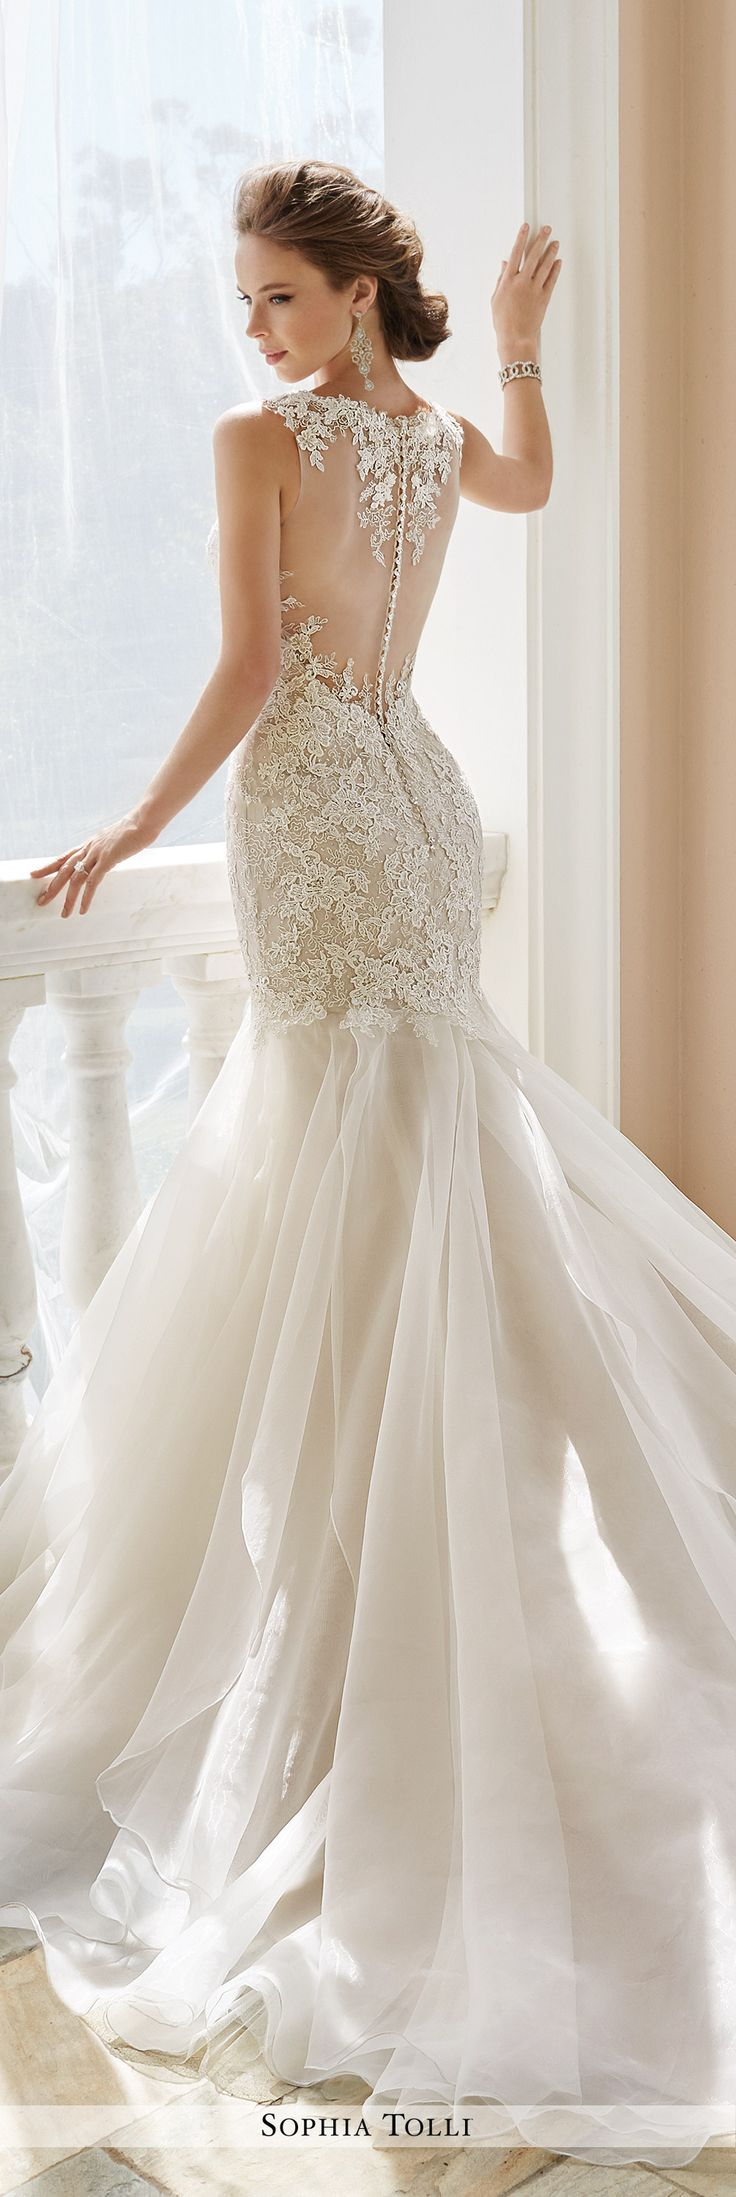 Meer Dan 1000 Afbeeldingen Over Sophia Tolli Wedding Dress Collection Op Pinterest - Trouwjurken ...